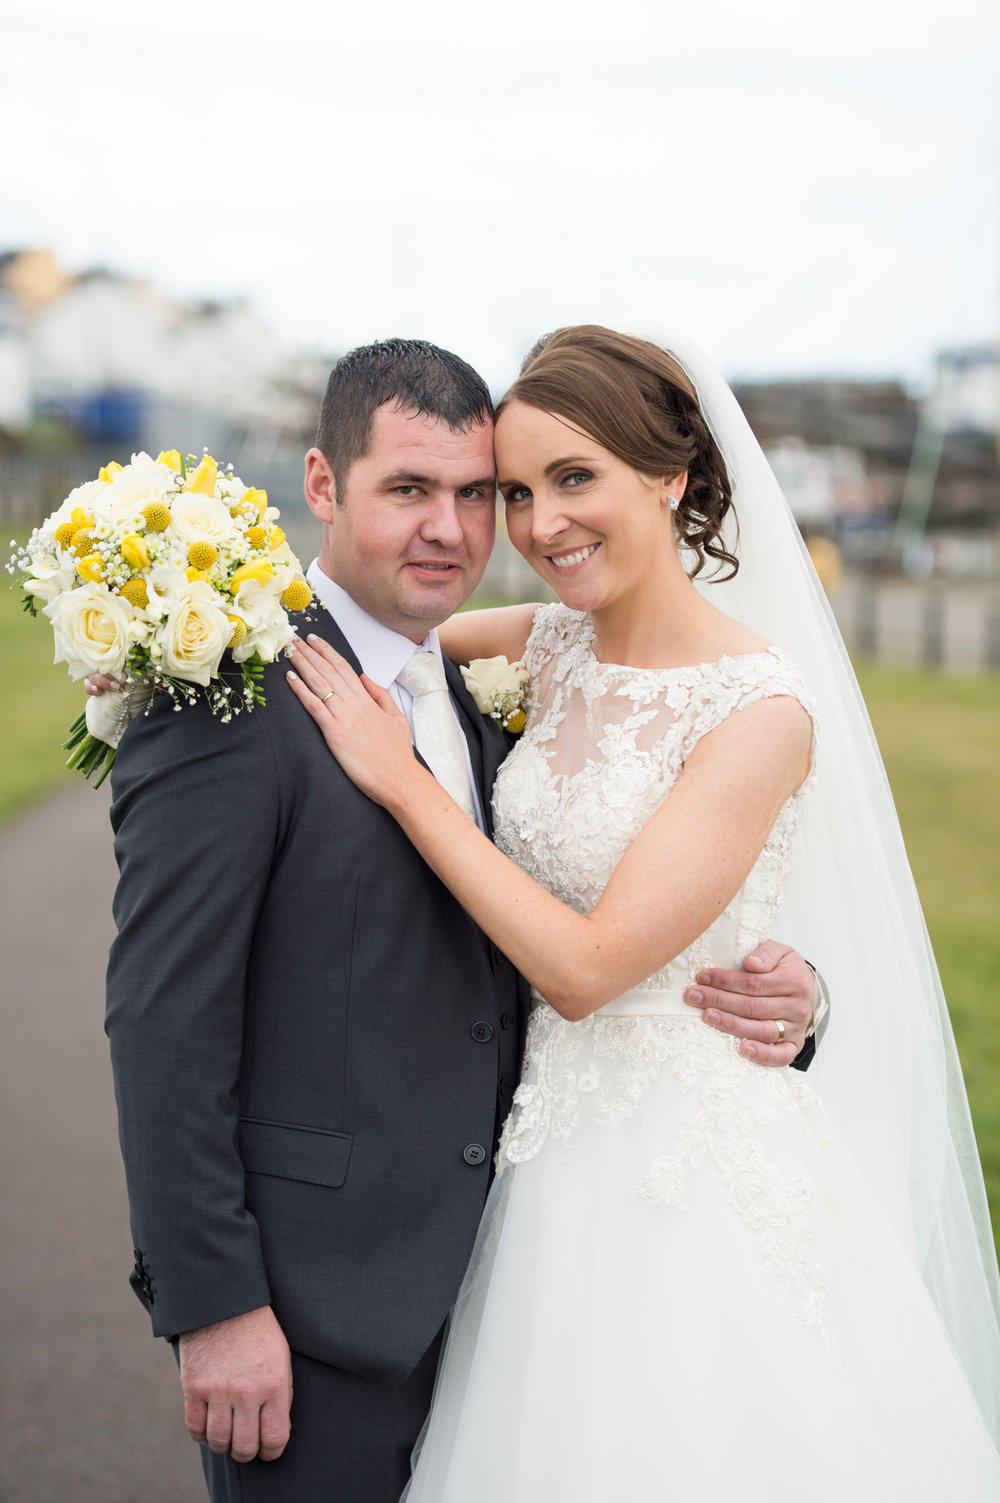 Michael_Gill_Photography_Wedding_Greencastle_Lousie_Jason_Donegal-12.jpg